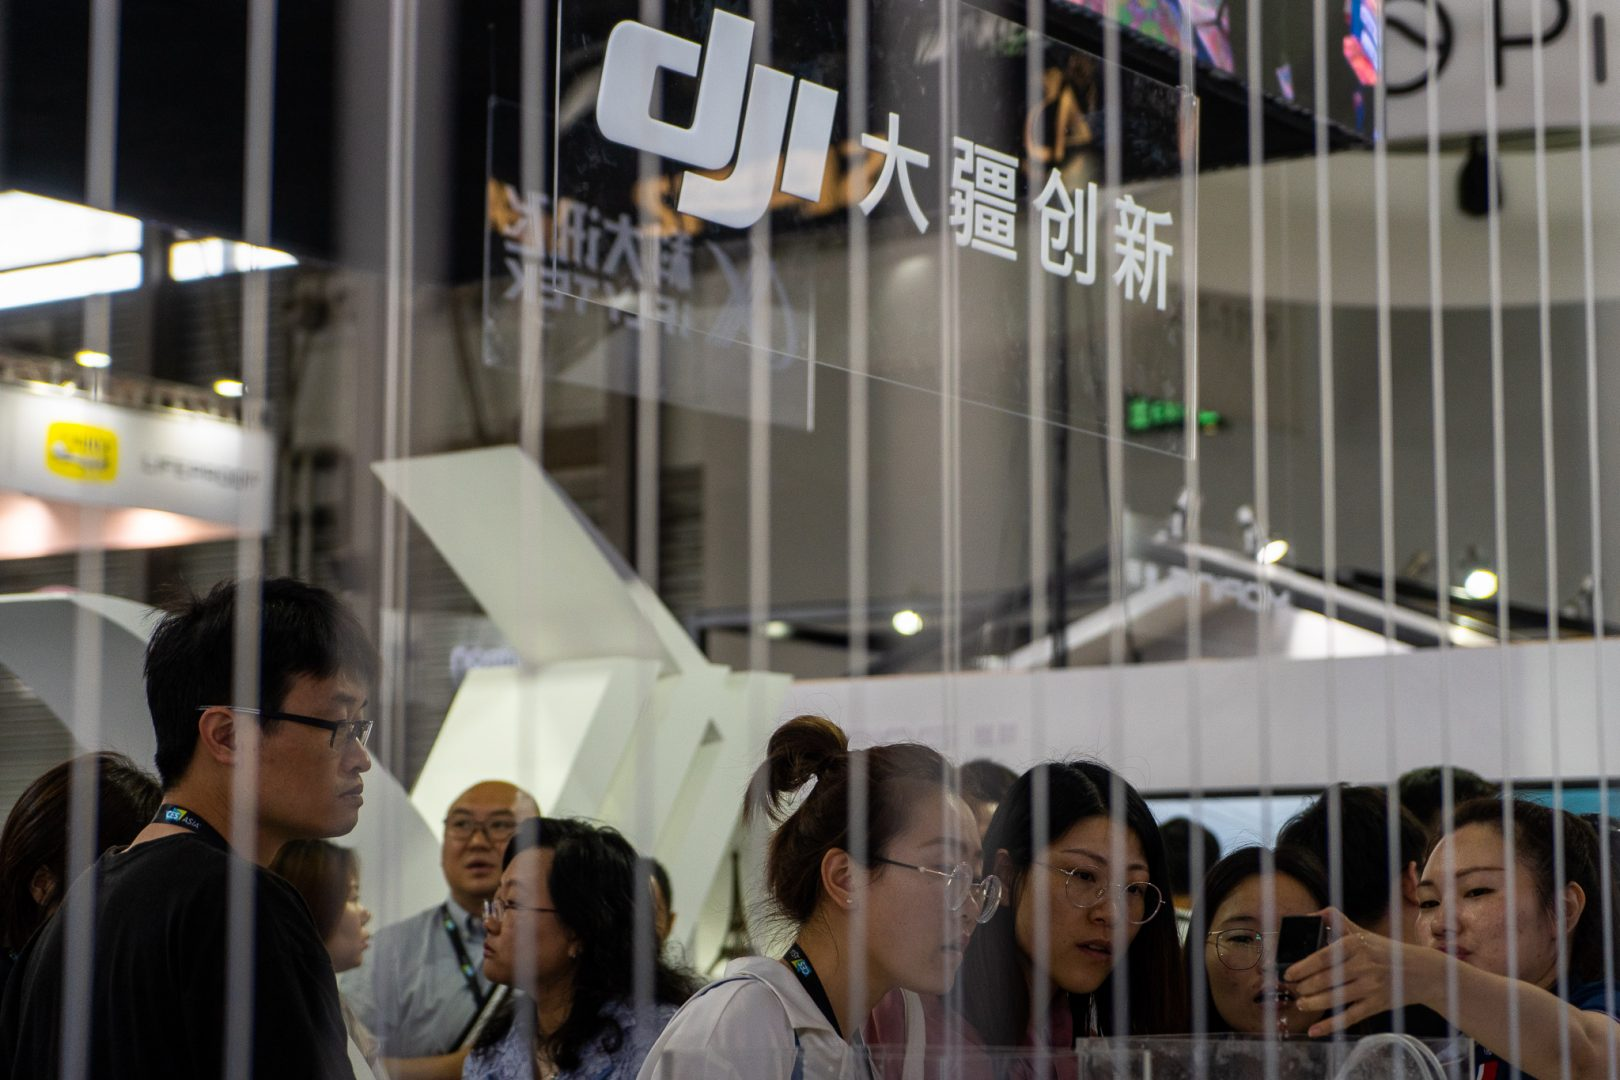 DJI appears to be making major changes to its US operations